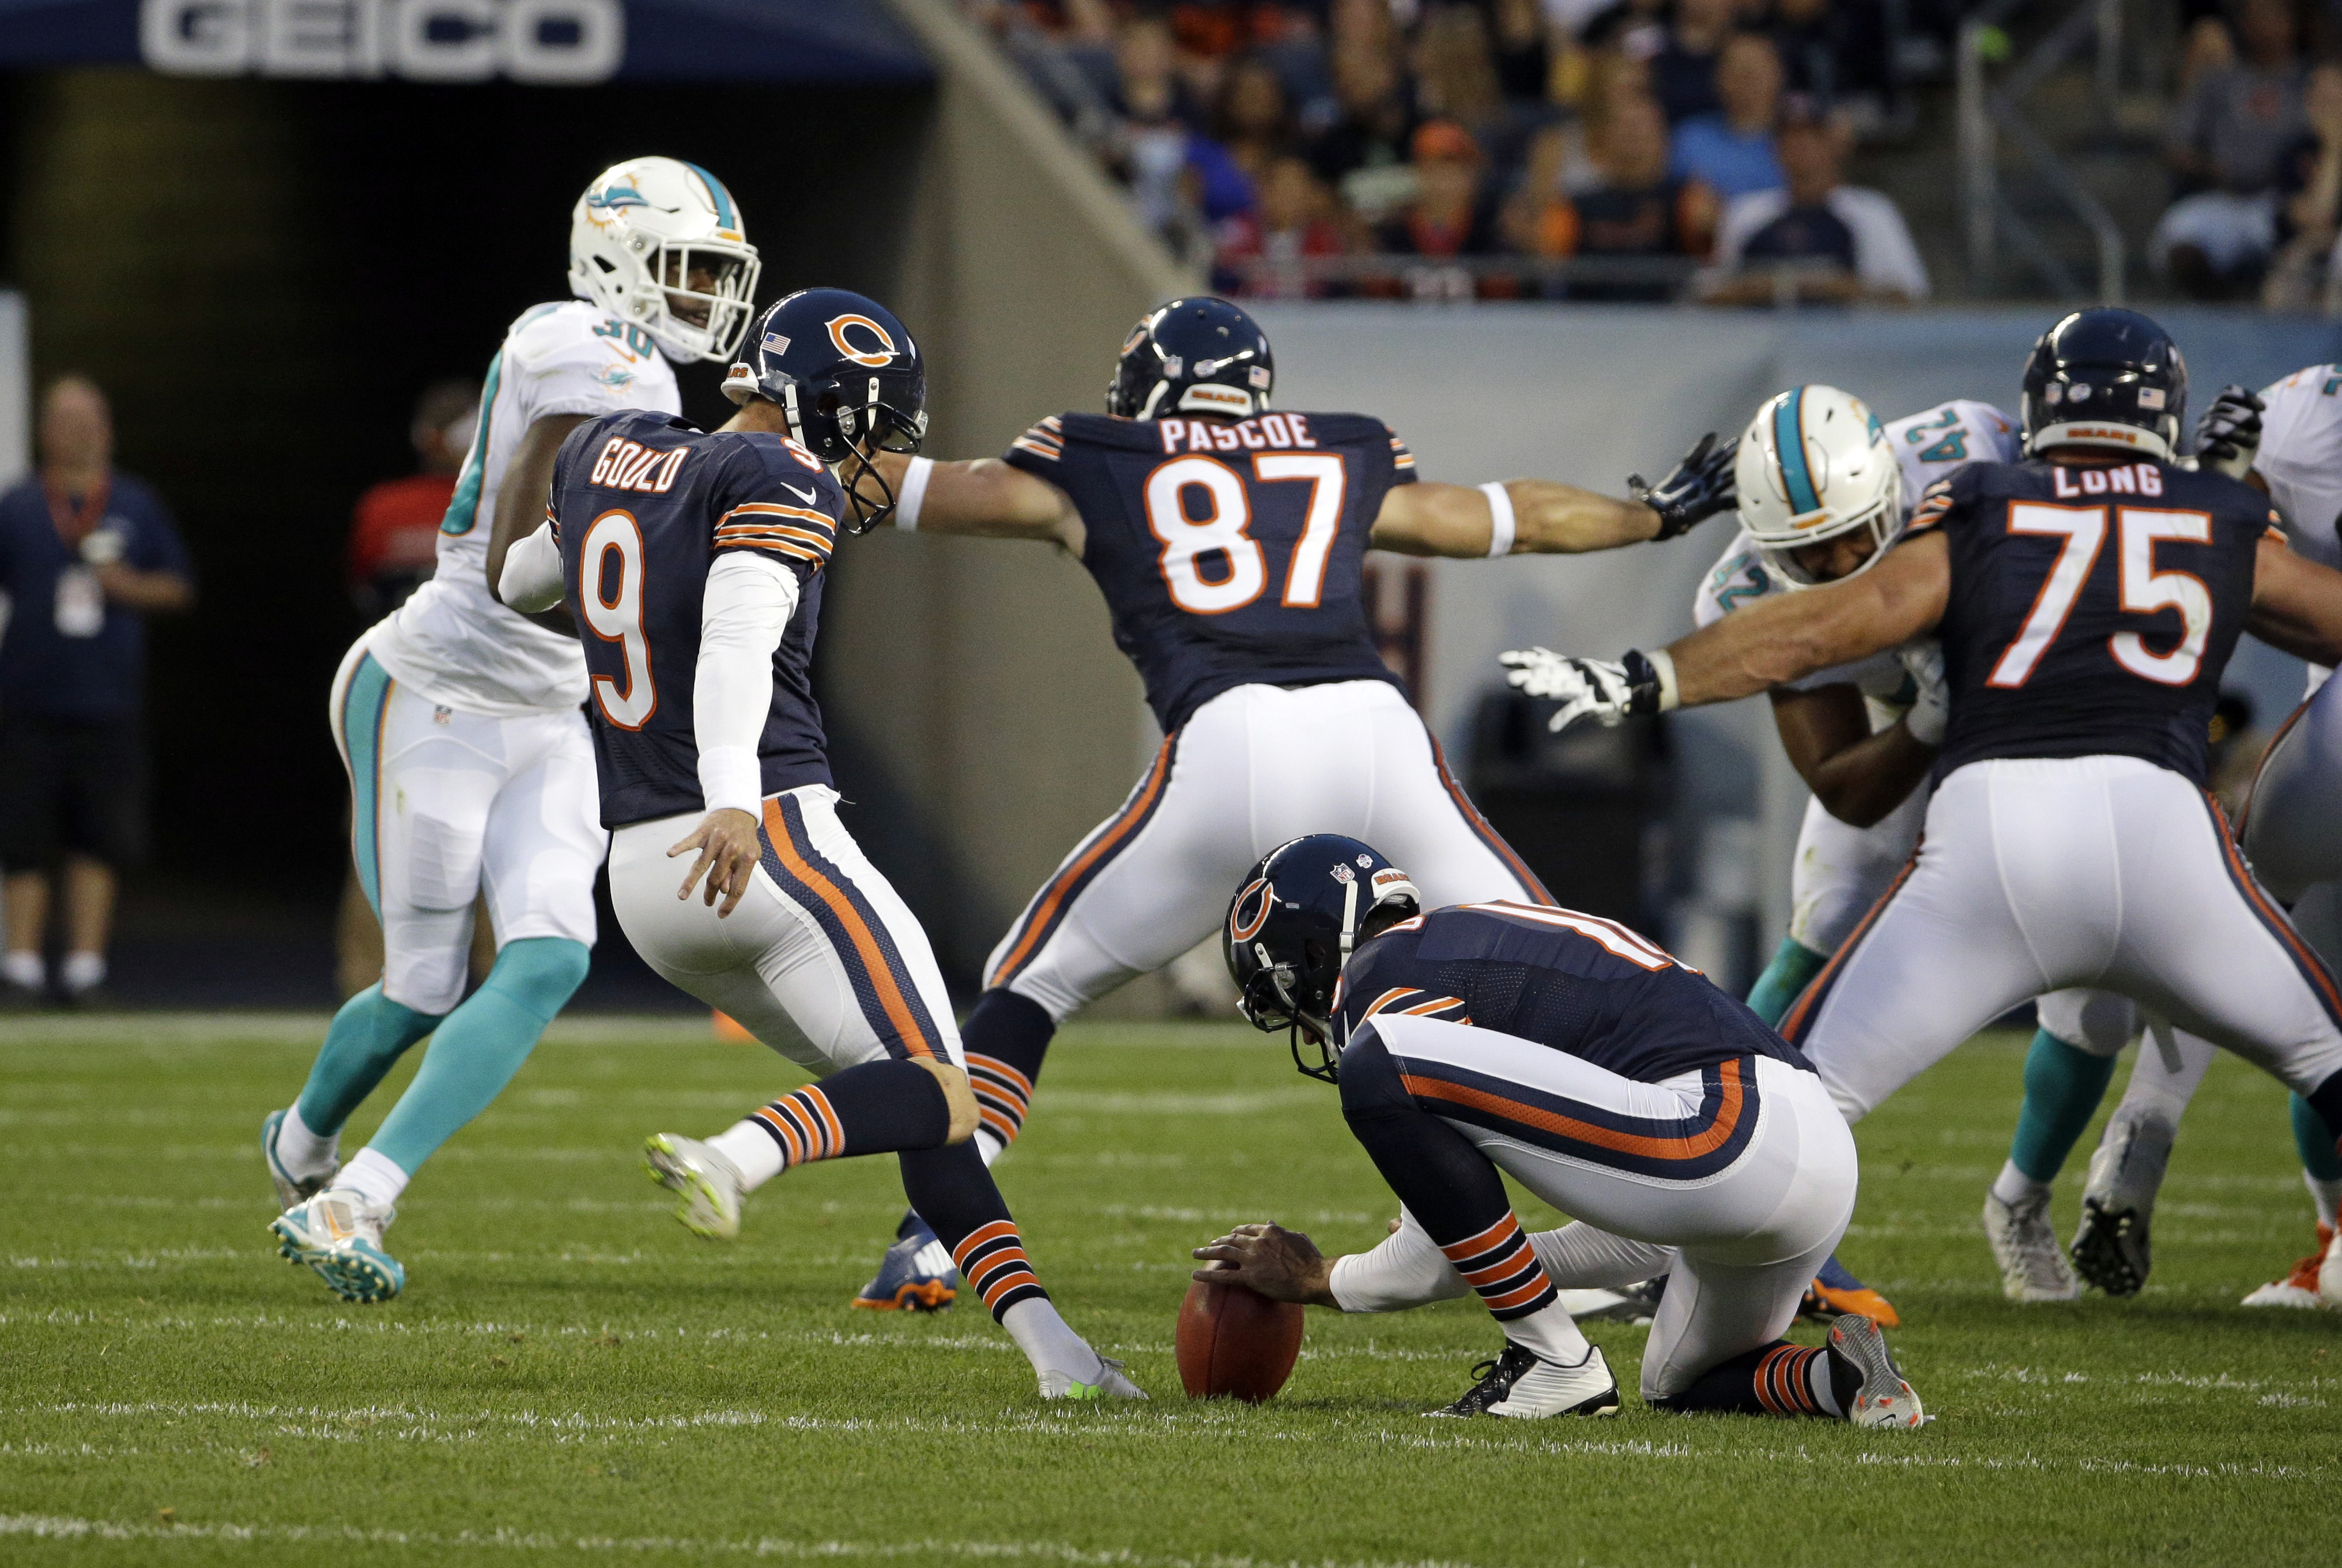 Chicago Bears kicker Robbie Gould (9) kicks a field goal from the hold of punter Pat O'Donnell during the first half of an NFL preseason football game against the Miami Dolphins in Chicago, Thursday, Aug. 13, 2015. (AP Photo/Nam Y. Huh)